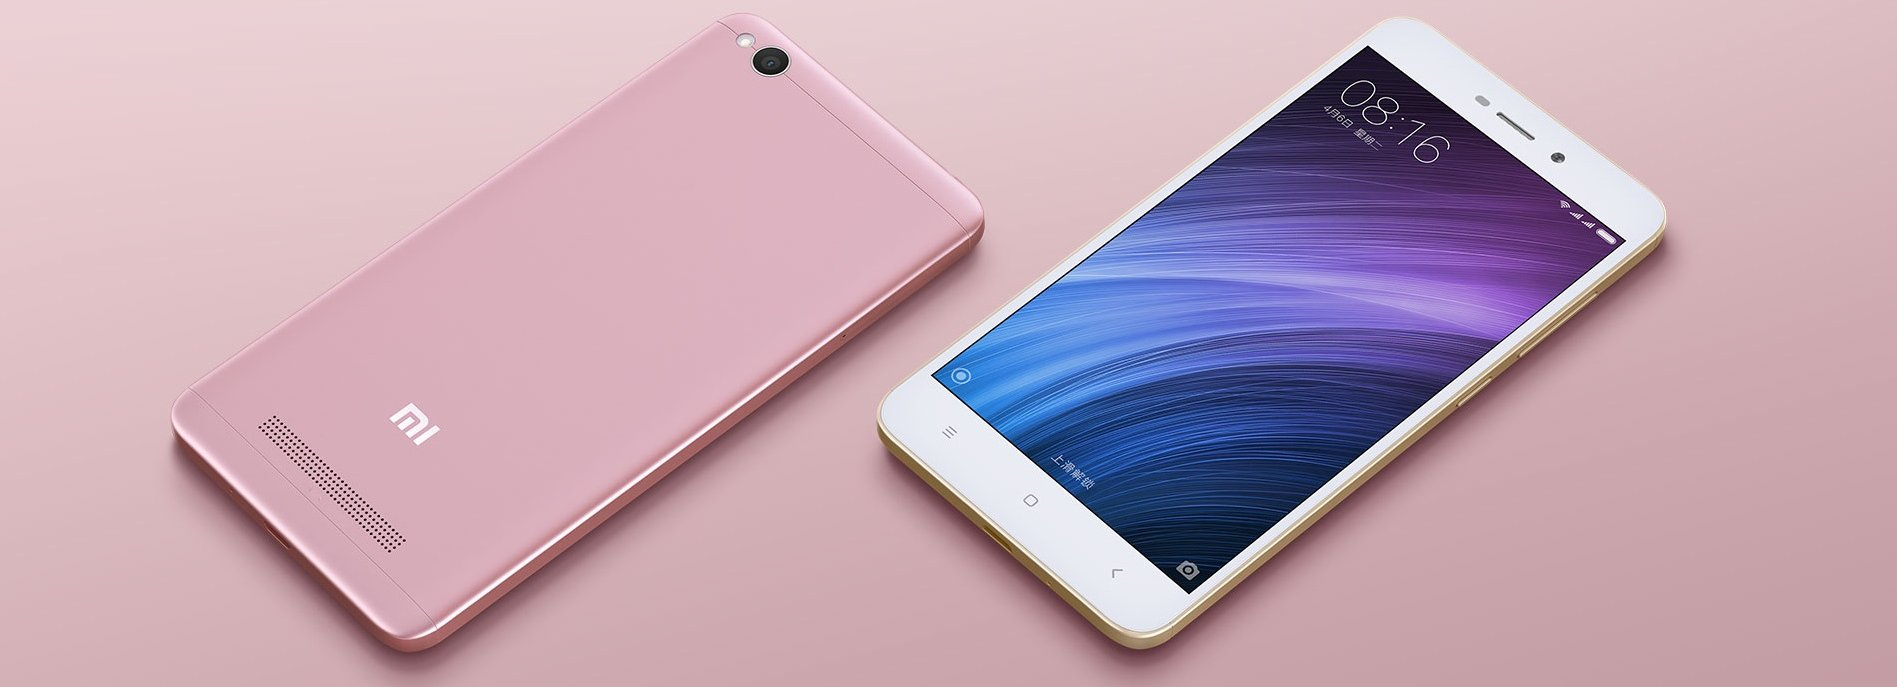 xiaomi redmi 4a w play